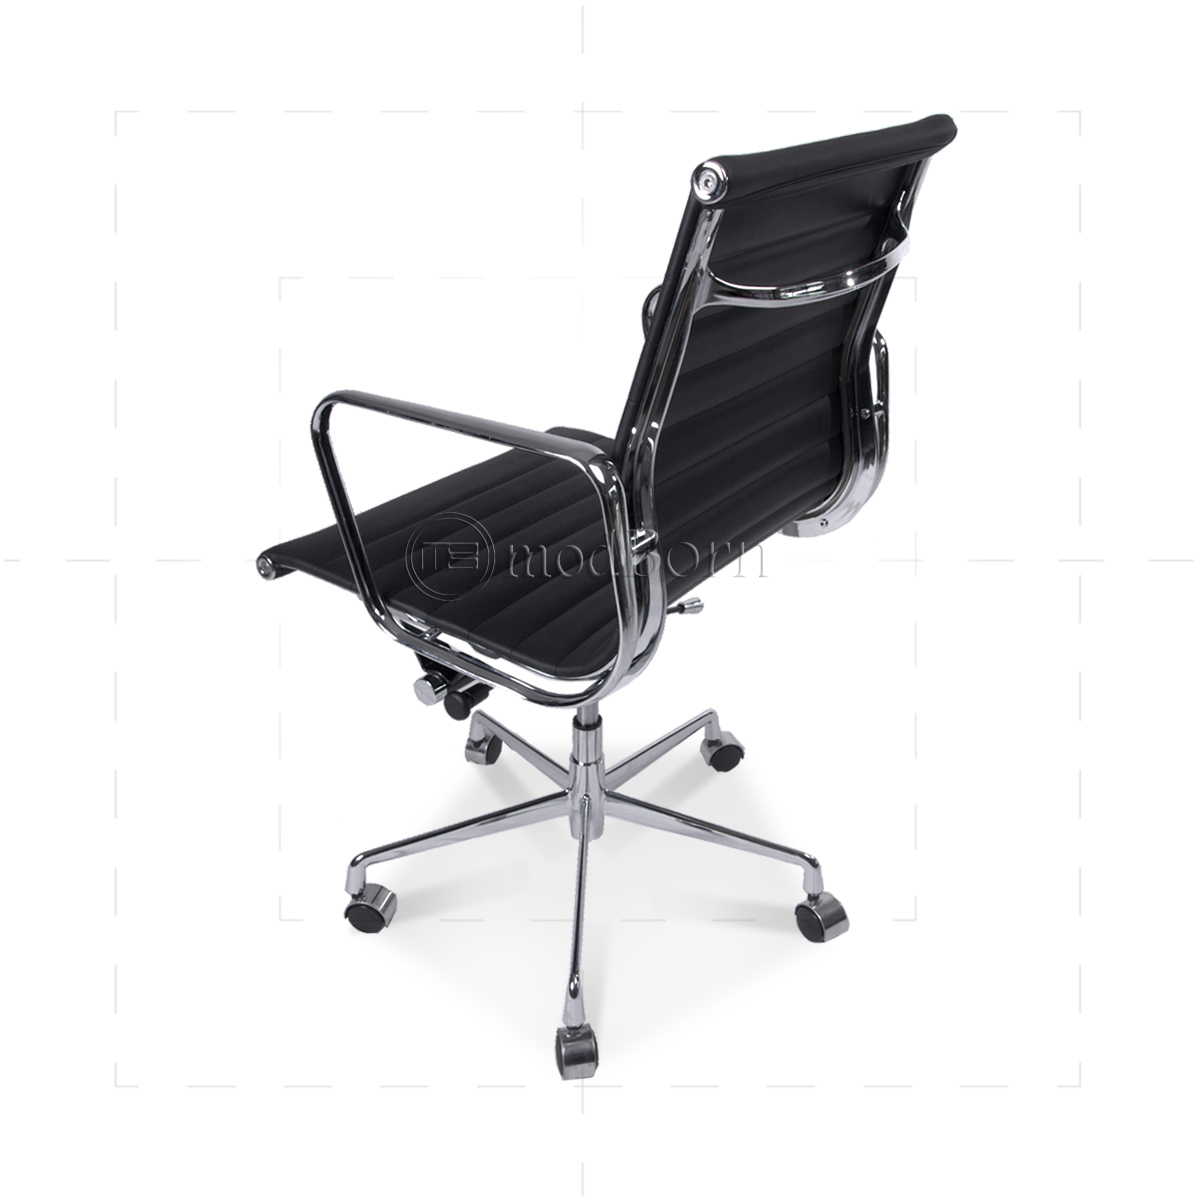 ea117 eames style office chair low back ribbed black leather bedroomsweet eames office chair replicas style